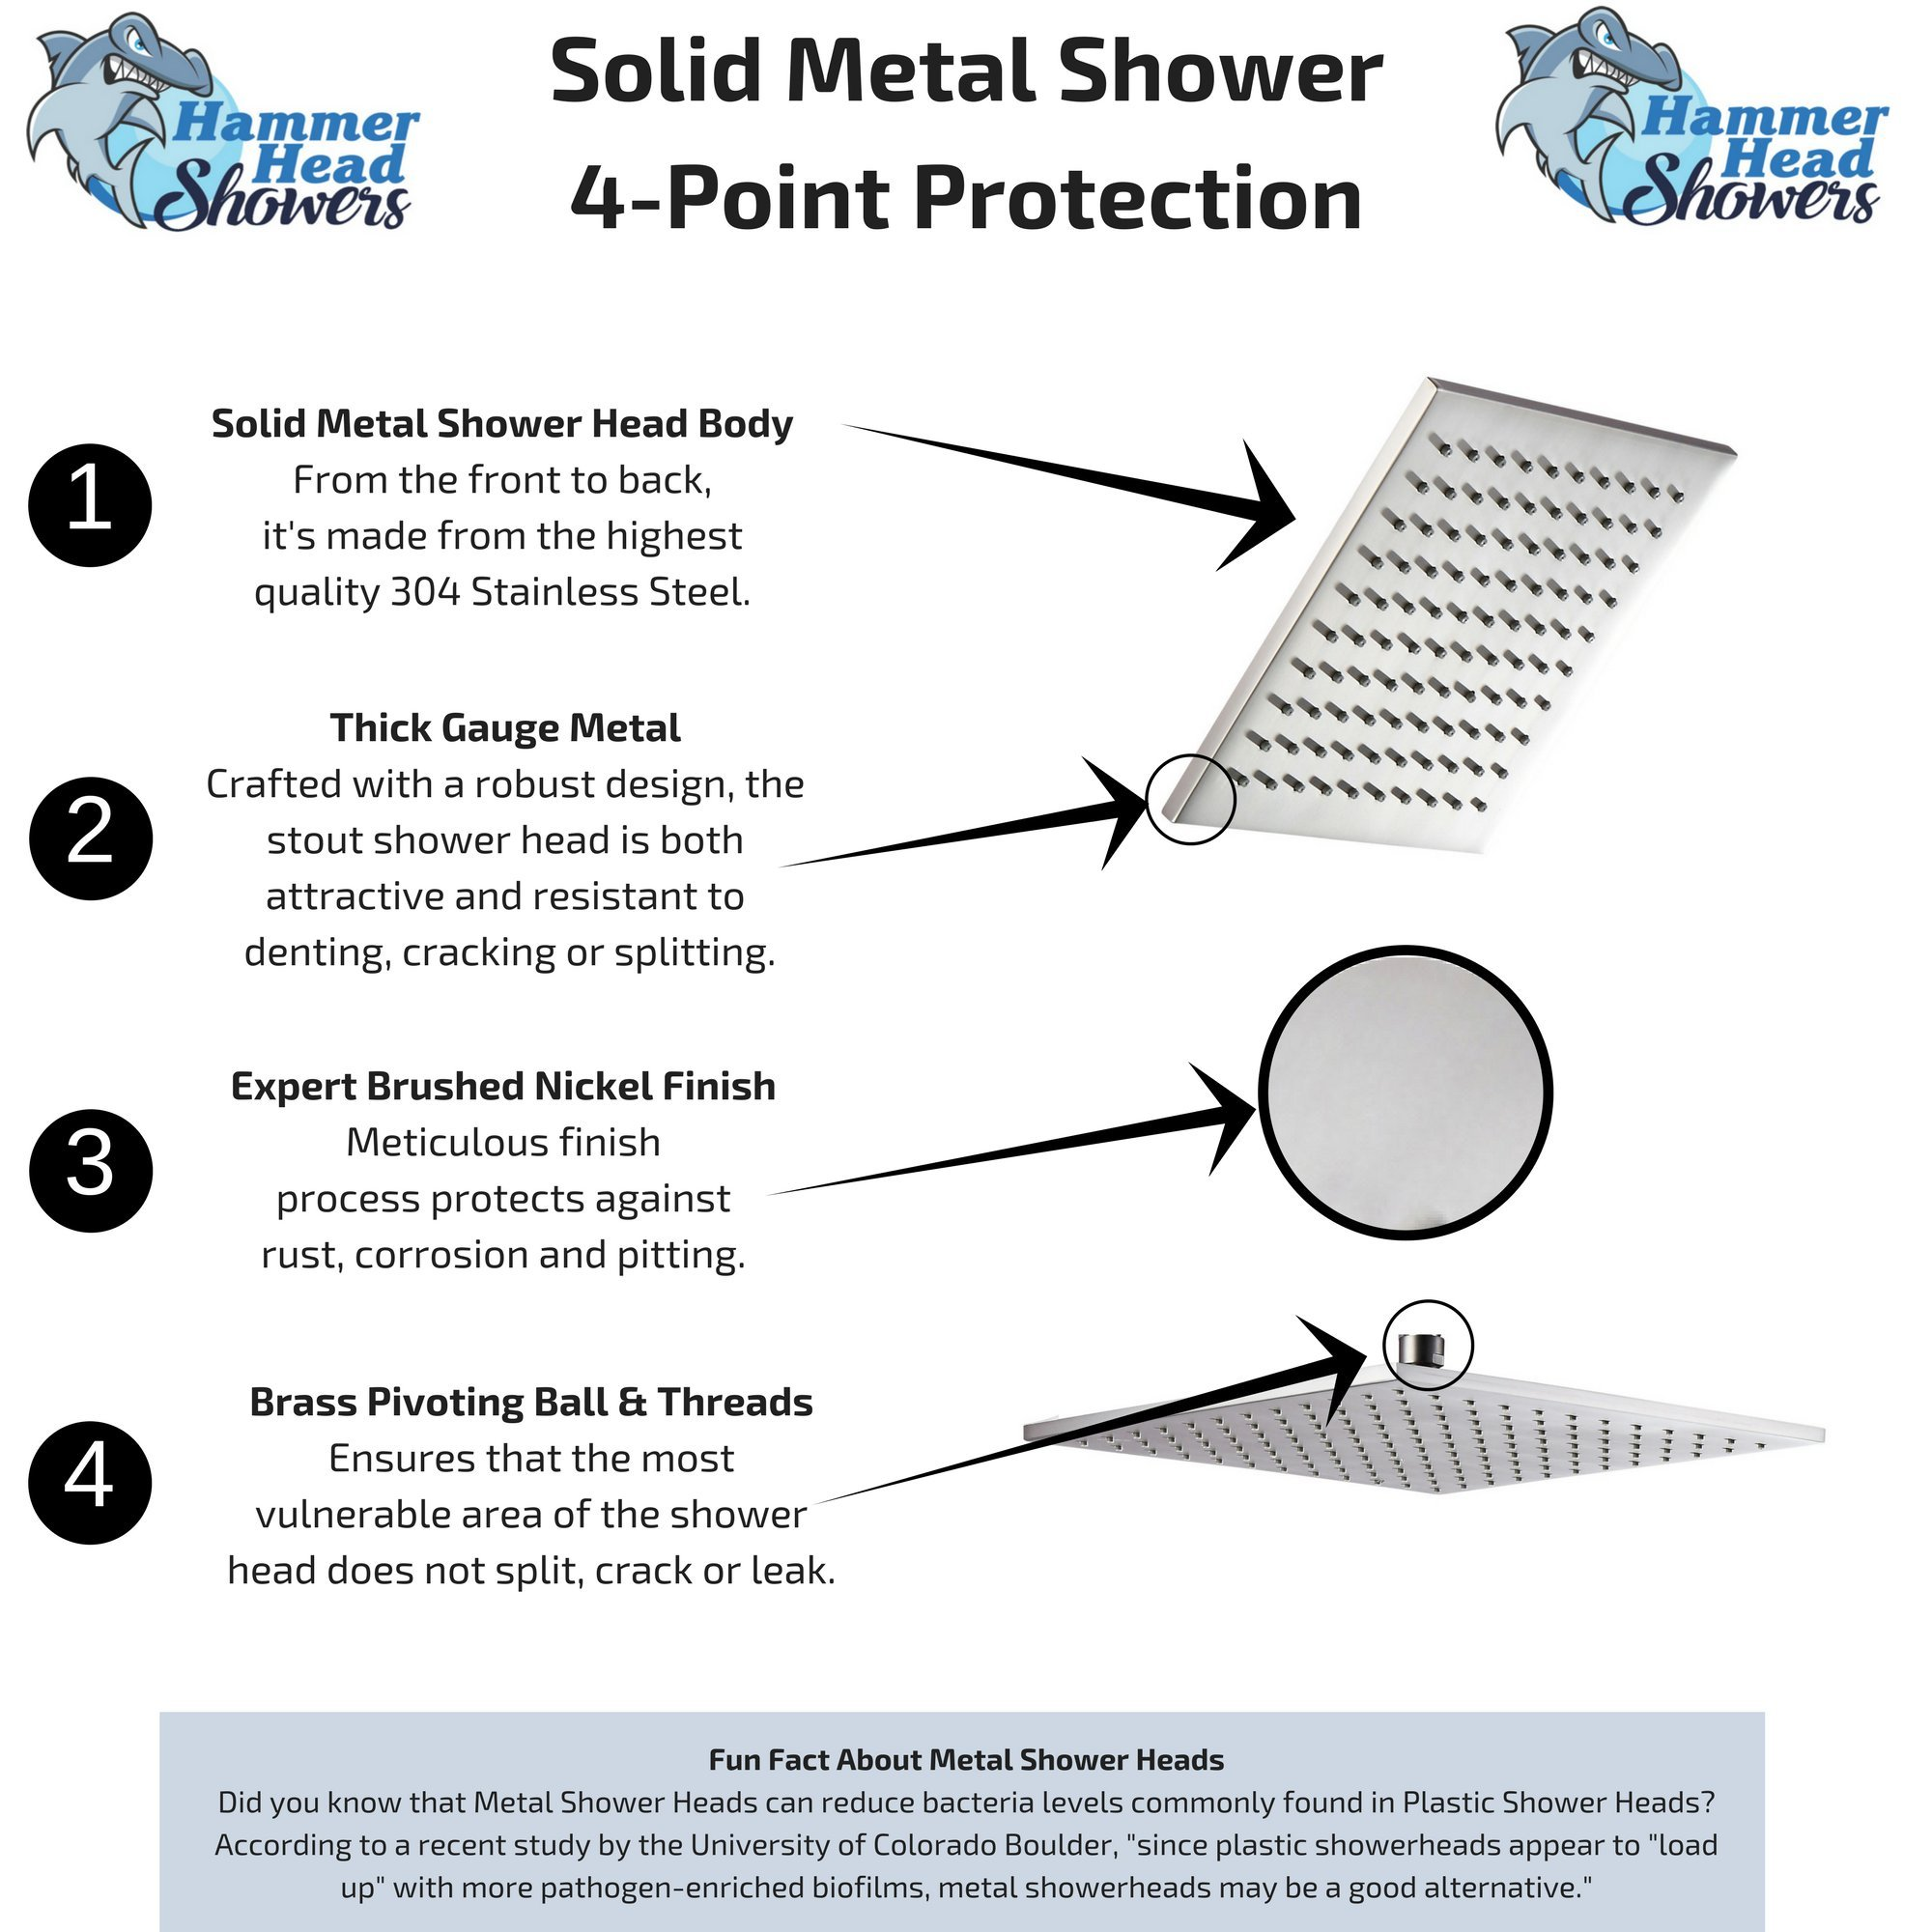 100% METAL Rain Shower Head Square 8 Inch Rainfall Showerhead with 2.5 GPM High Pressure Water Flow | Large Luxury Rainshower for Wall Mount, Overhead, or Ceiling Mounted Waterfall | Brushed Nickel by HammerHead Showers (Image #3)